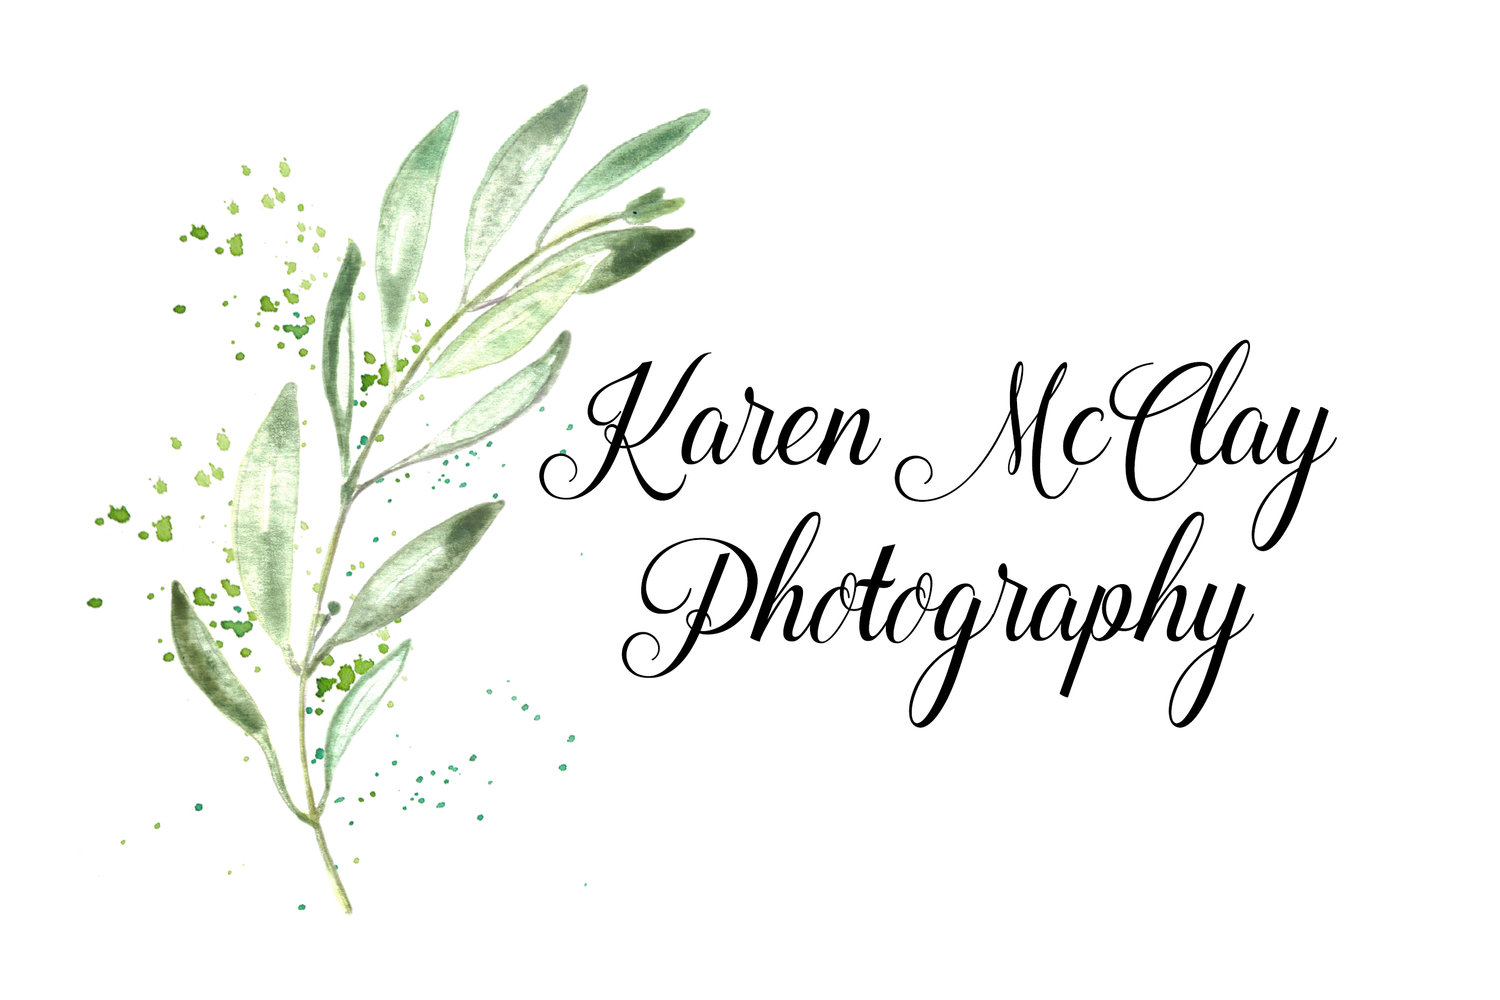 Karen McClay Photography